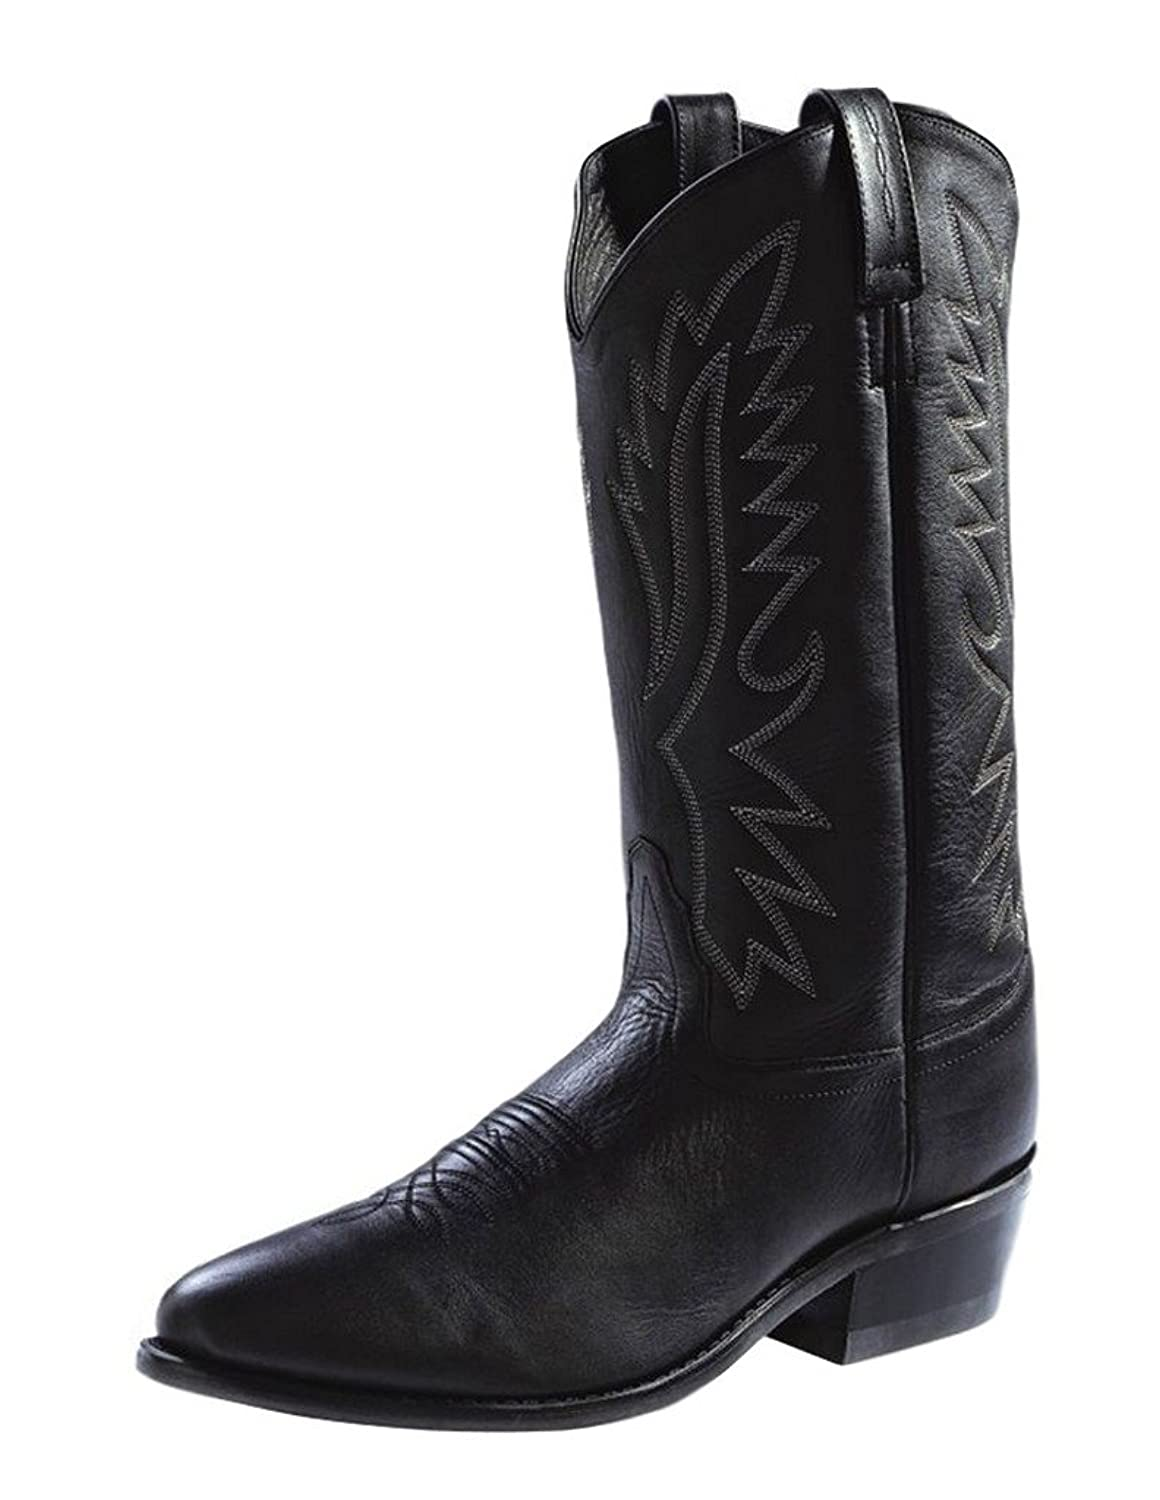 Old West Mens 13-Inch Genuine Leather Narrow Round Toe Black Western Cowboy Boot